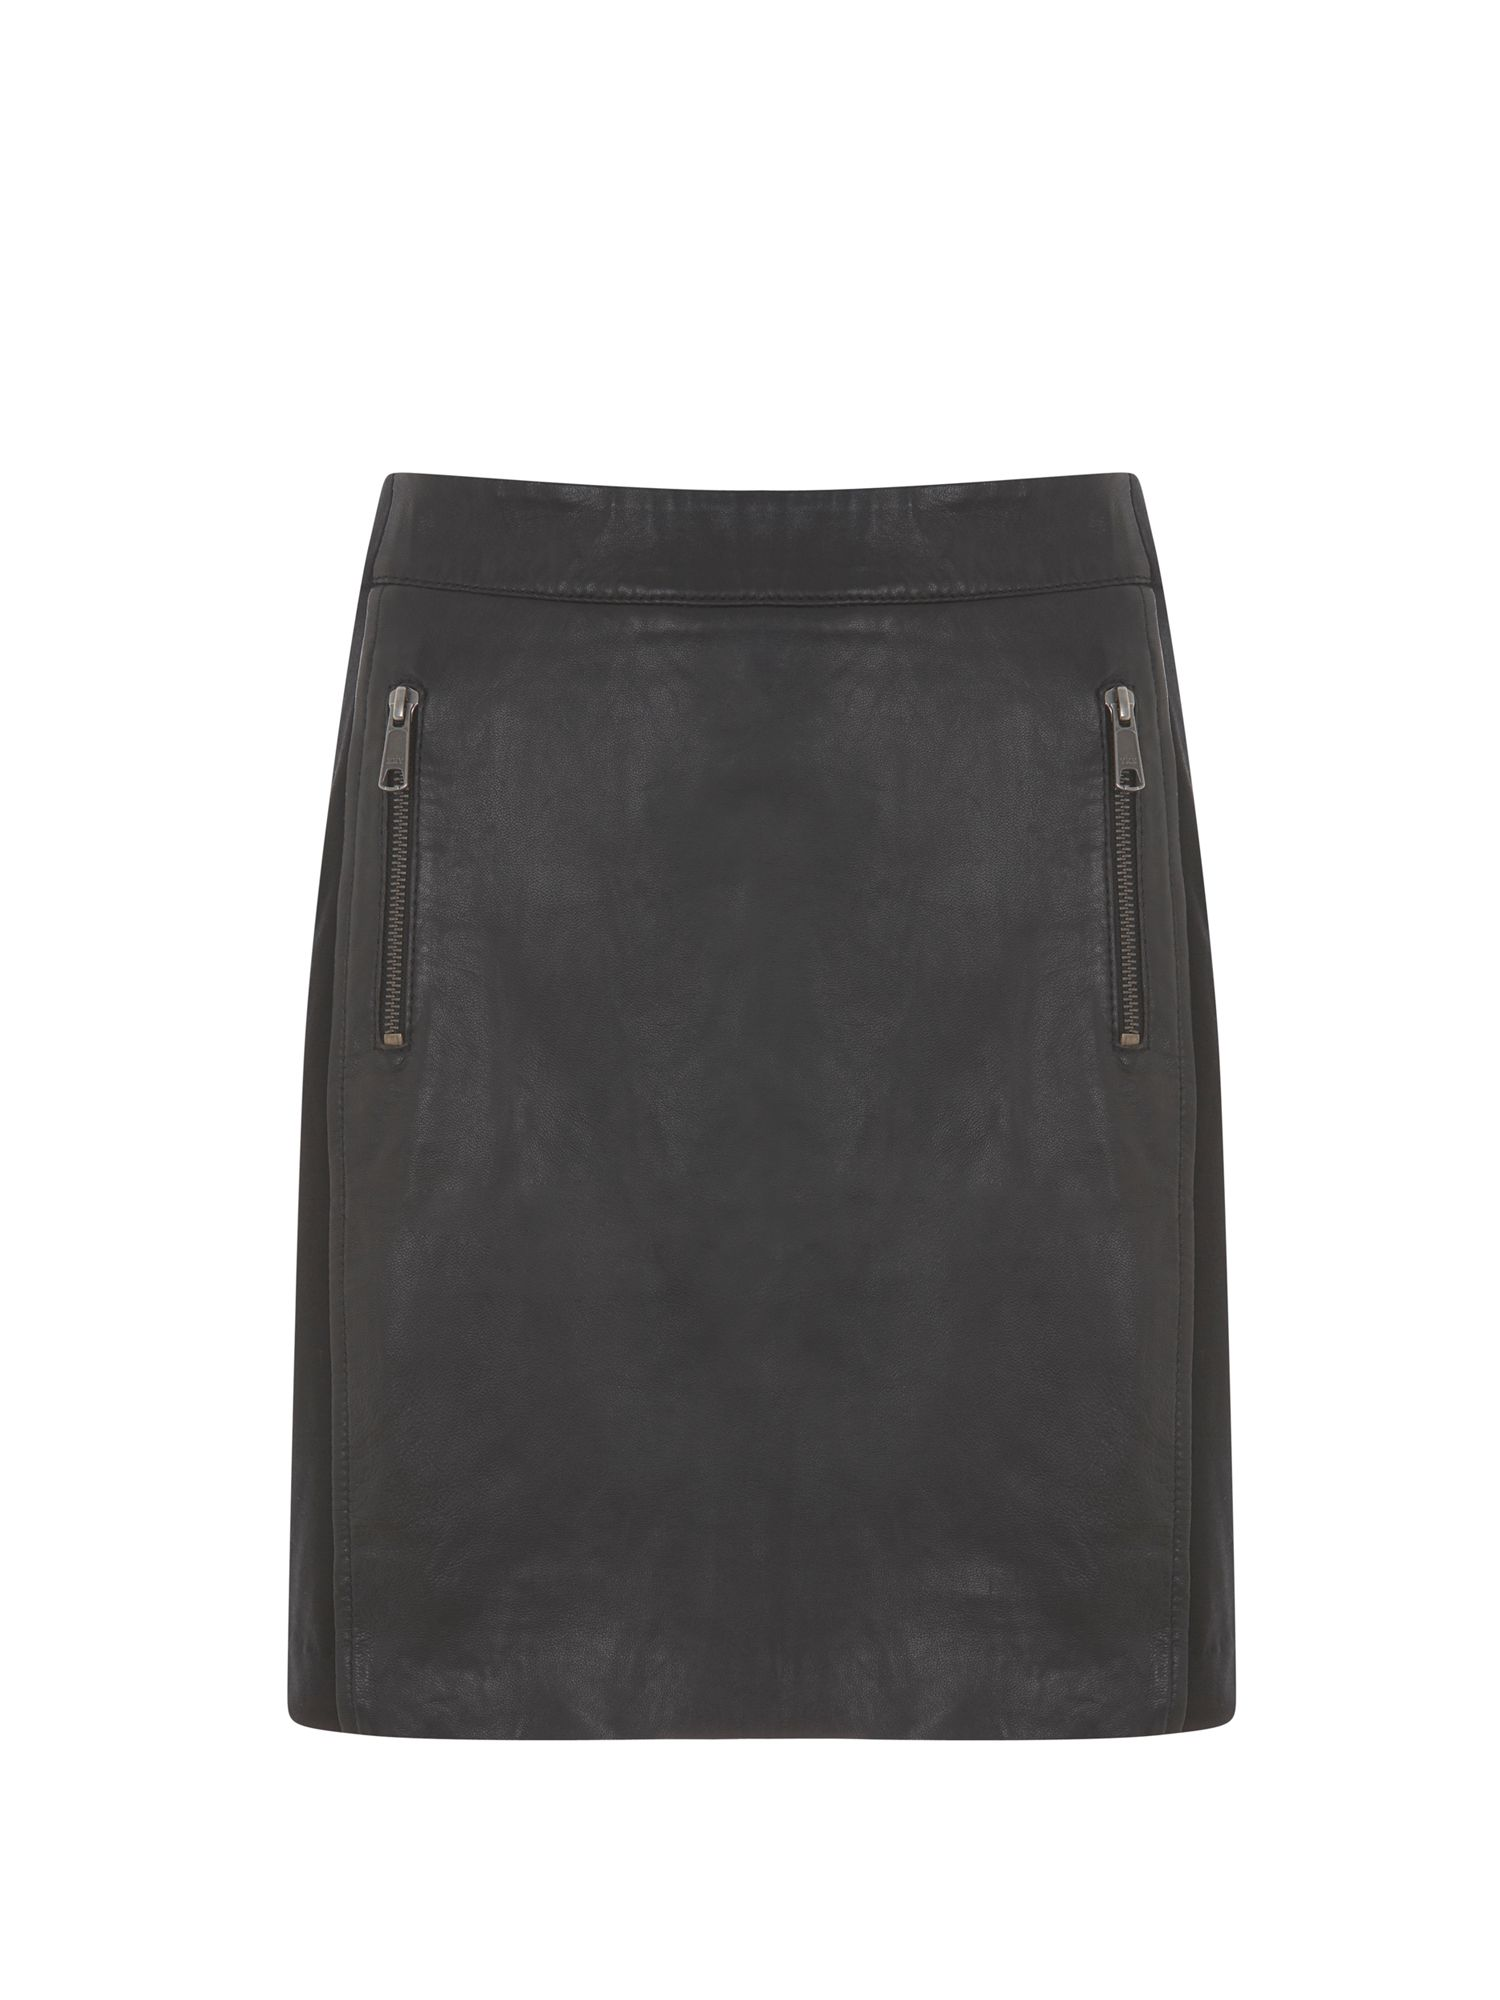 Black Leather & Jersey Skirt